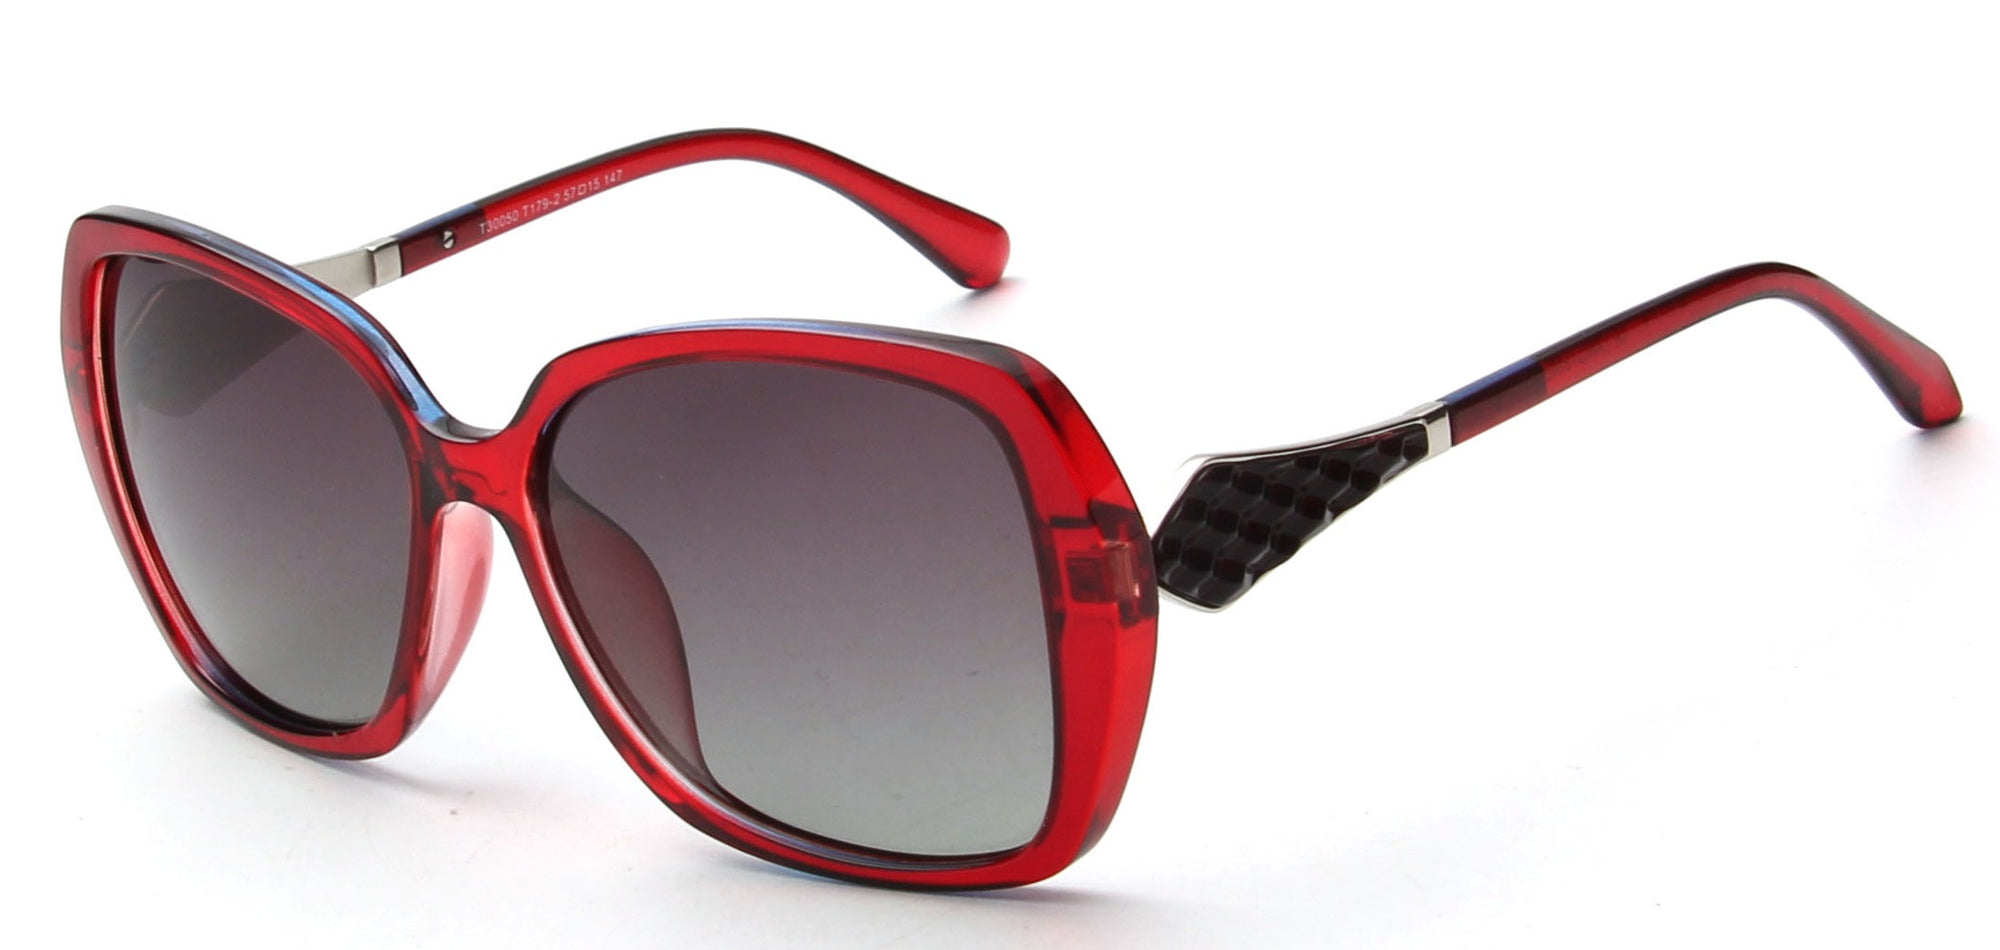 LAT-T30050 - Women Square Oversize Polarized Sunglasses - Wholesale Sunglasses and glasses